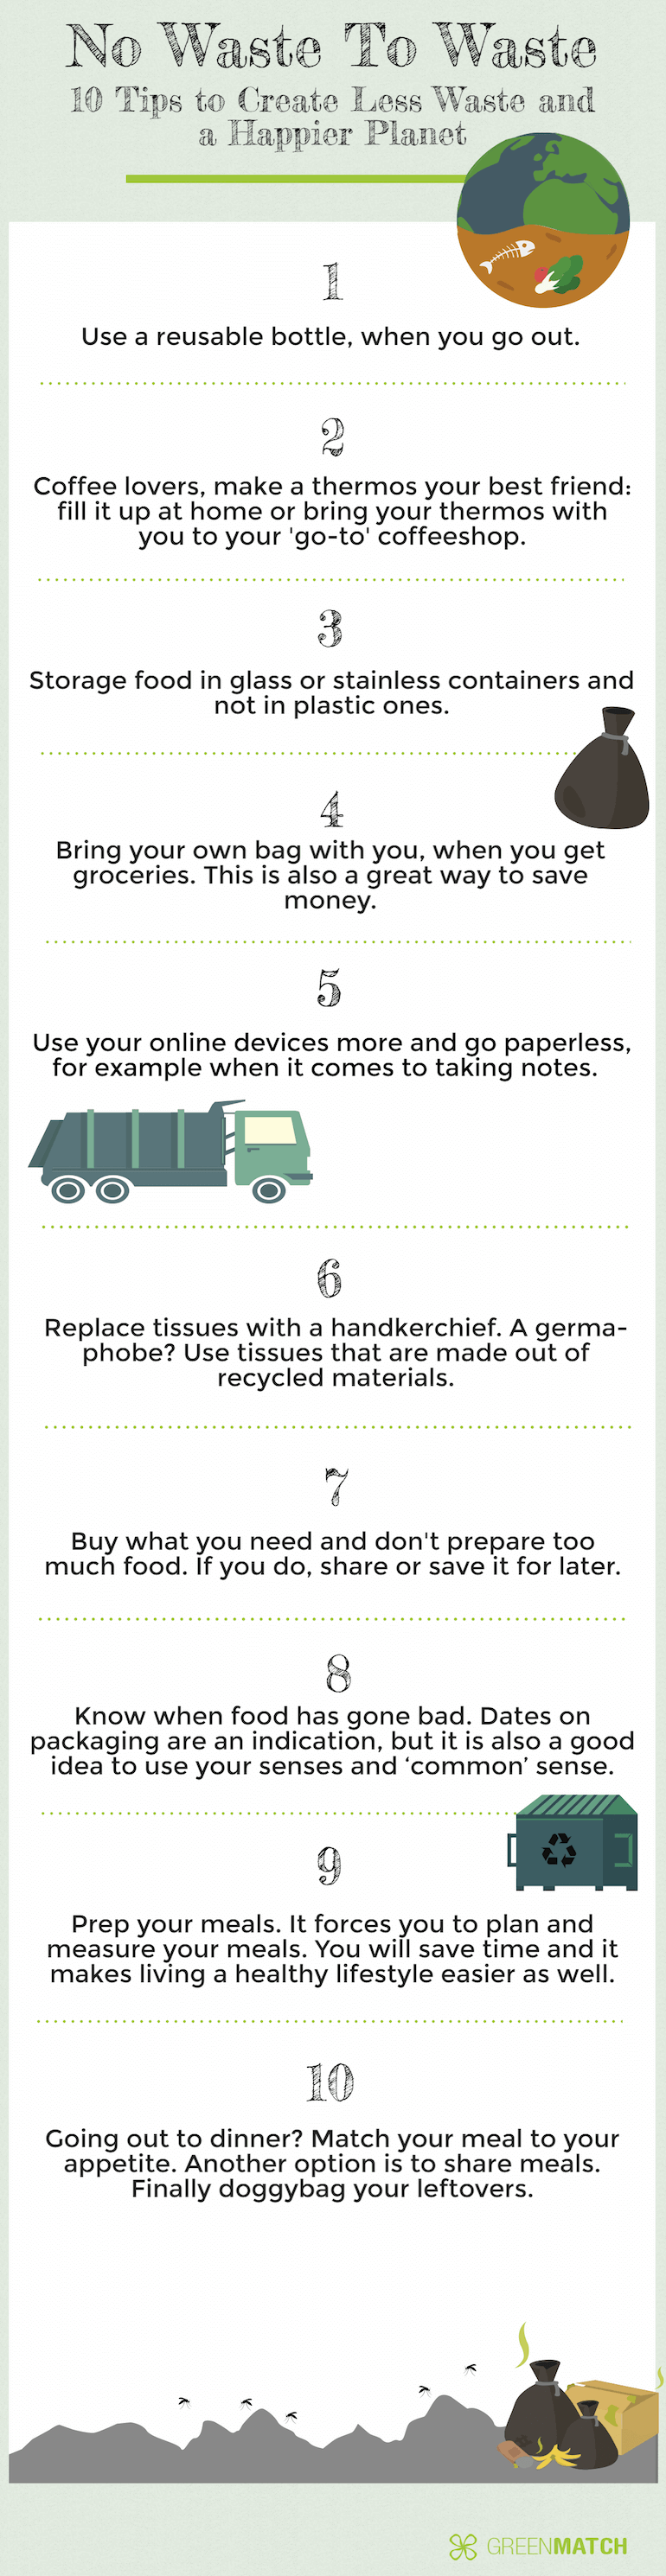 No Waste to Waste Infographic